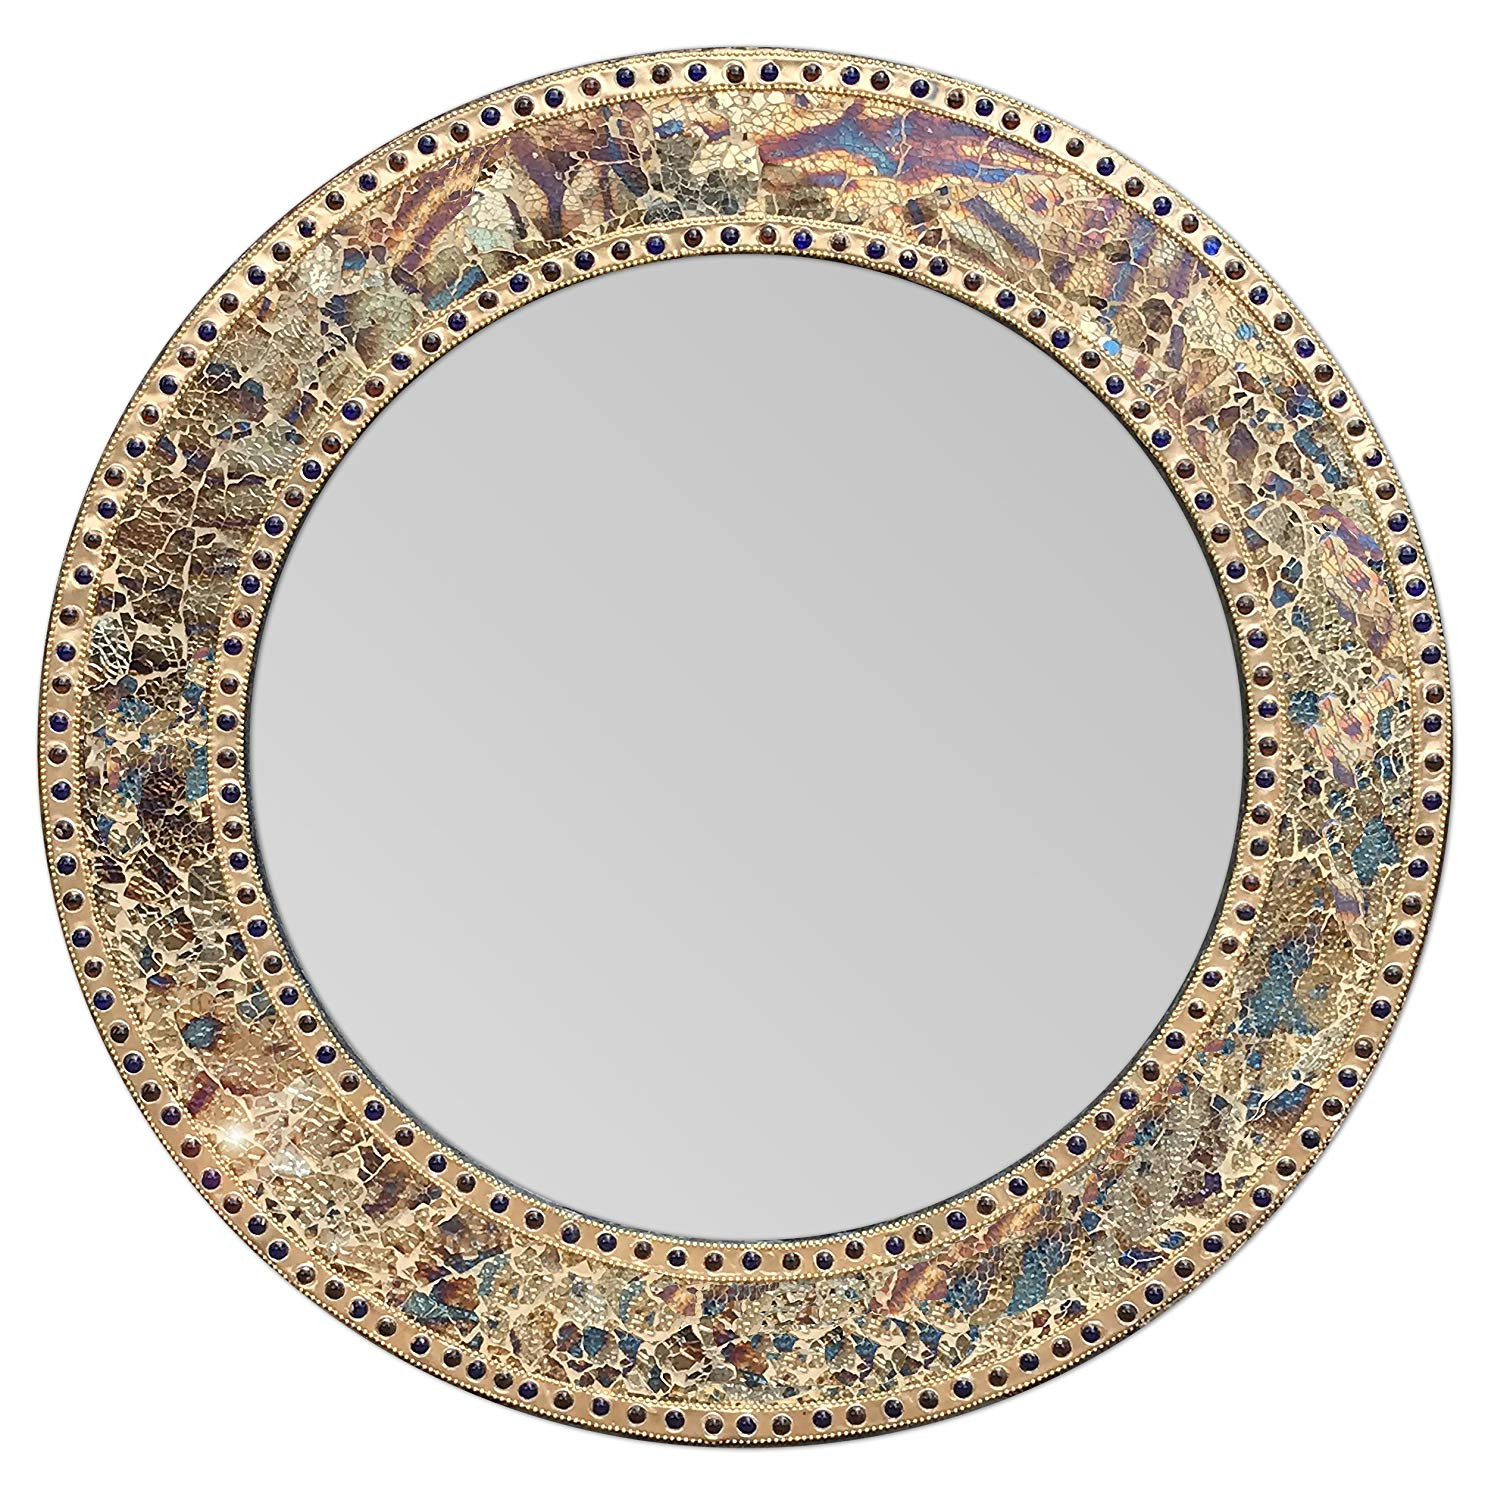 "Well Known Mosaic Wall Mirrors For Decorshore 24"" Fired Gold, Round Wall Mirror, Crackled Glass Mosaic, Decorative Design (Gallery 7 of 20)"